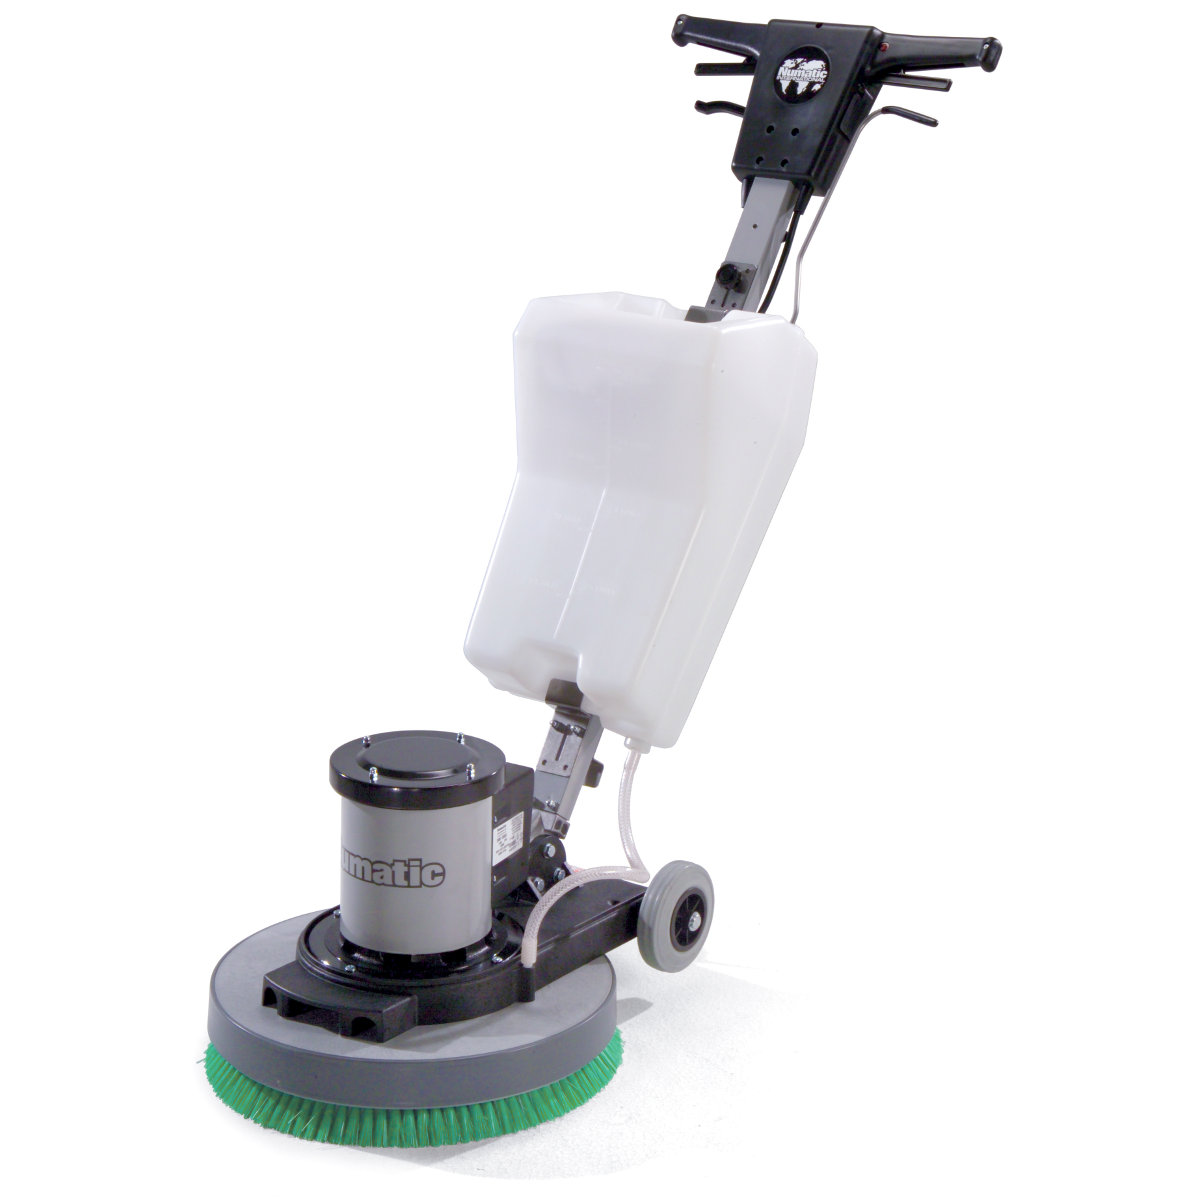 Floor scrubber floor polisher wellers hire for Floor polisher